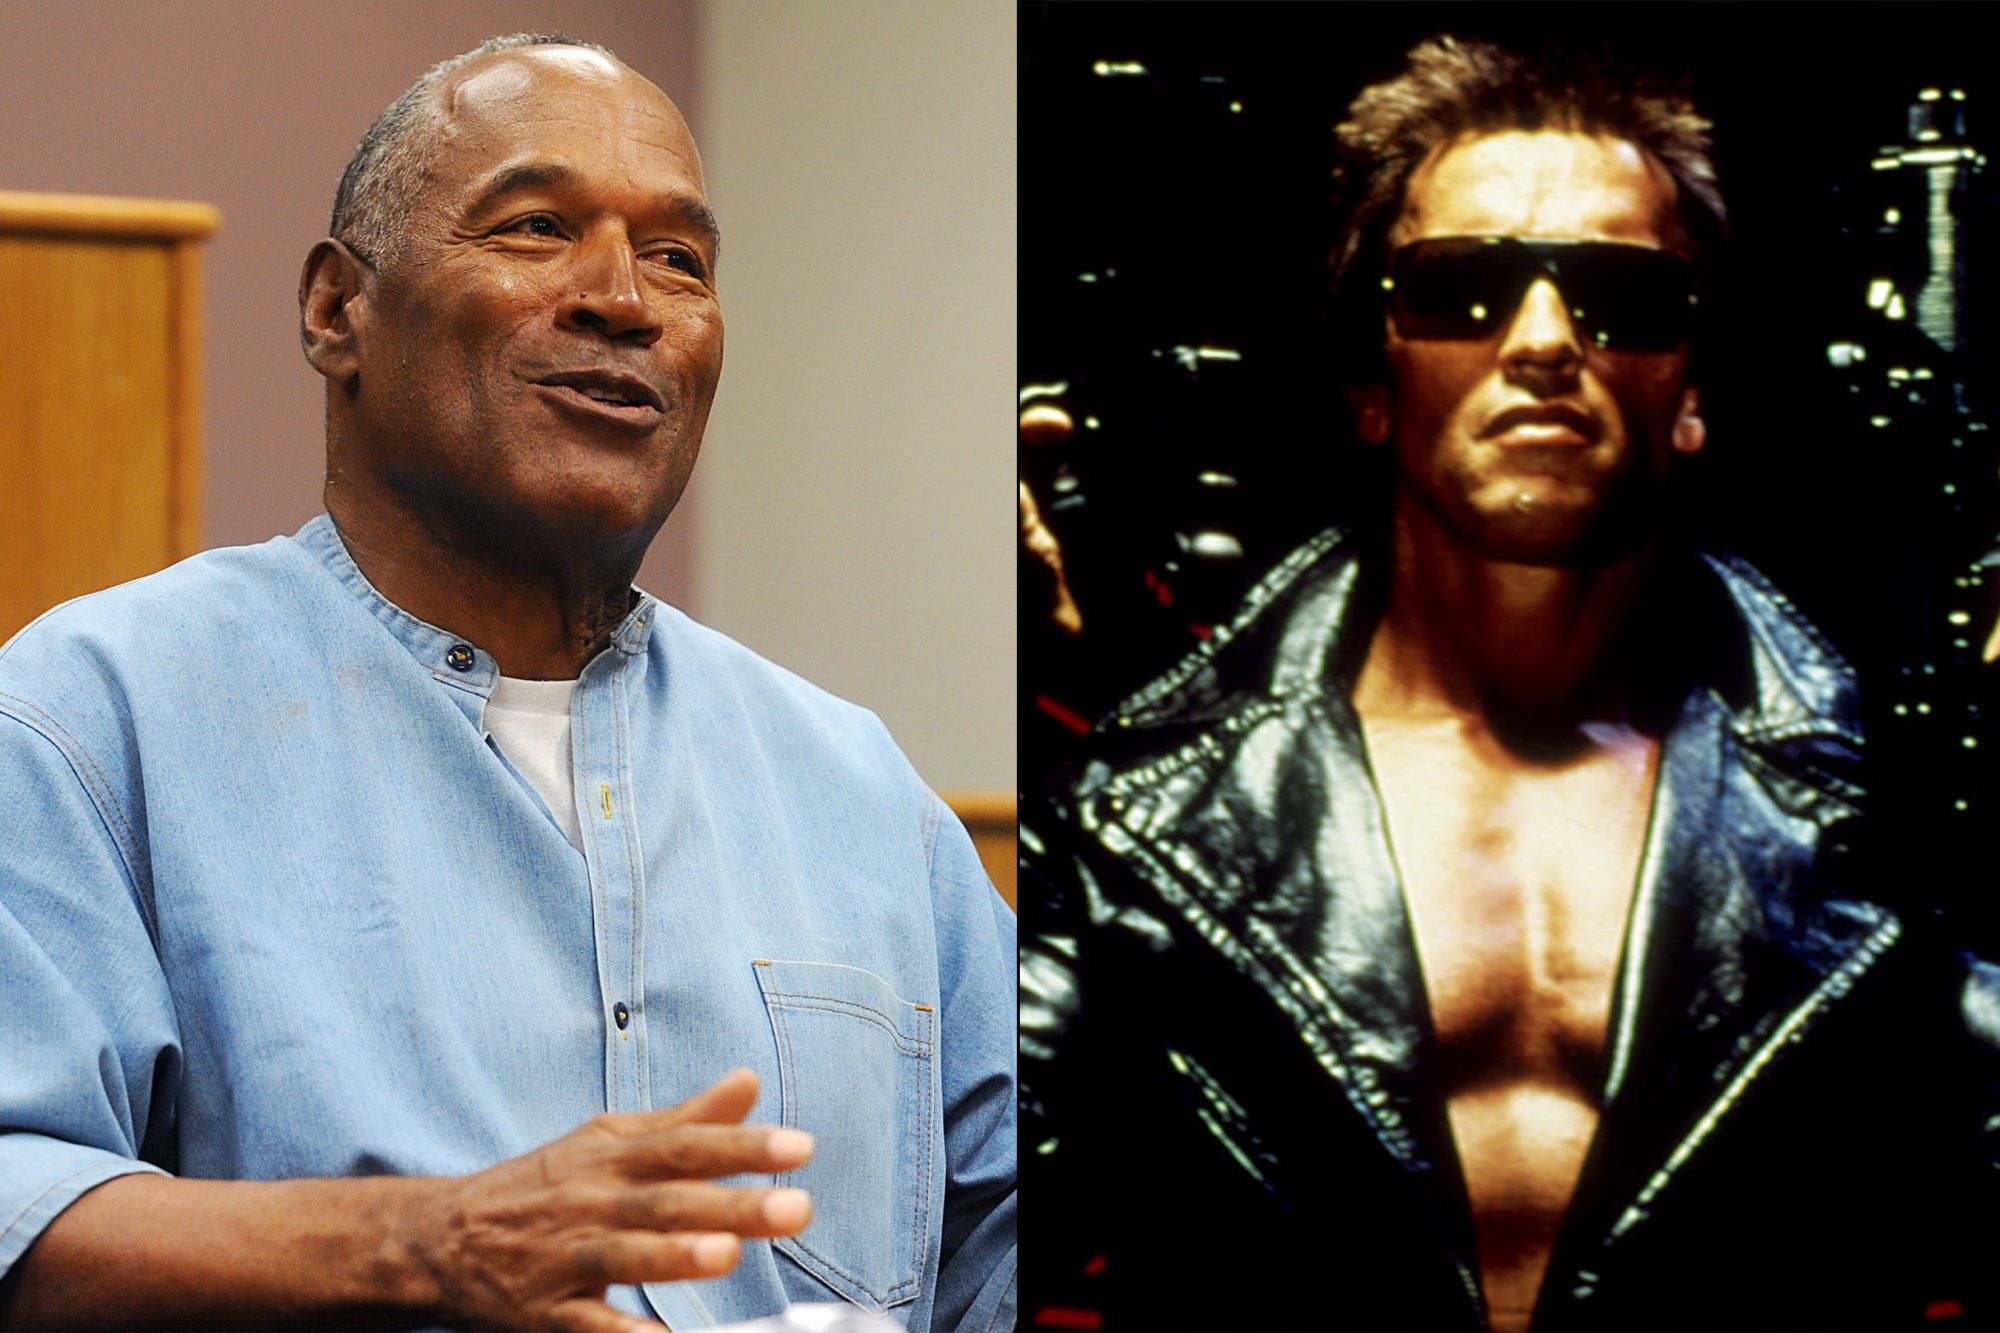 O.J. Simpson in The Terminator